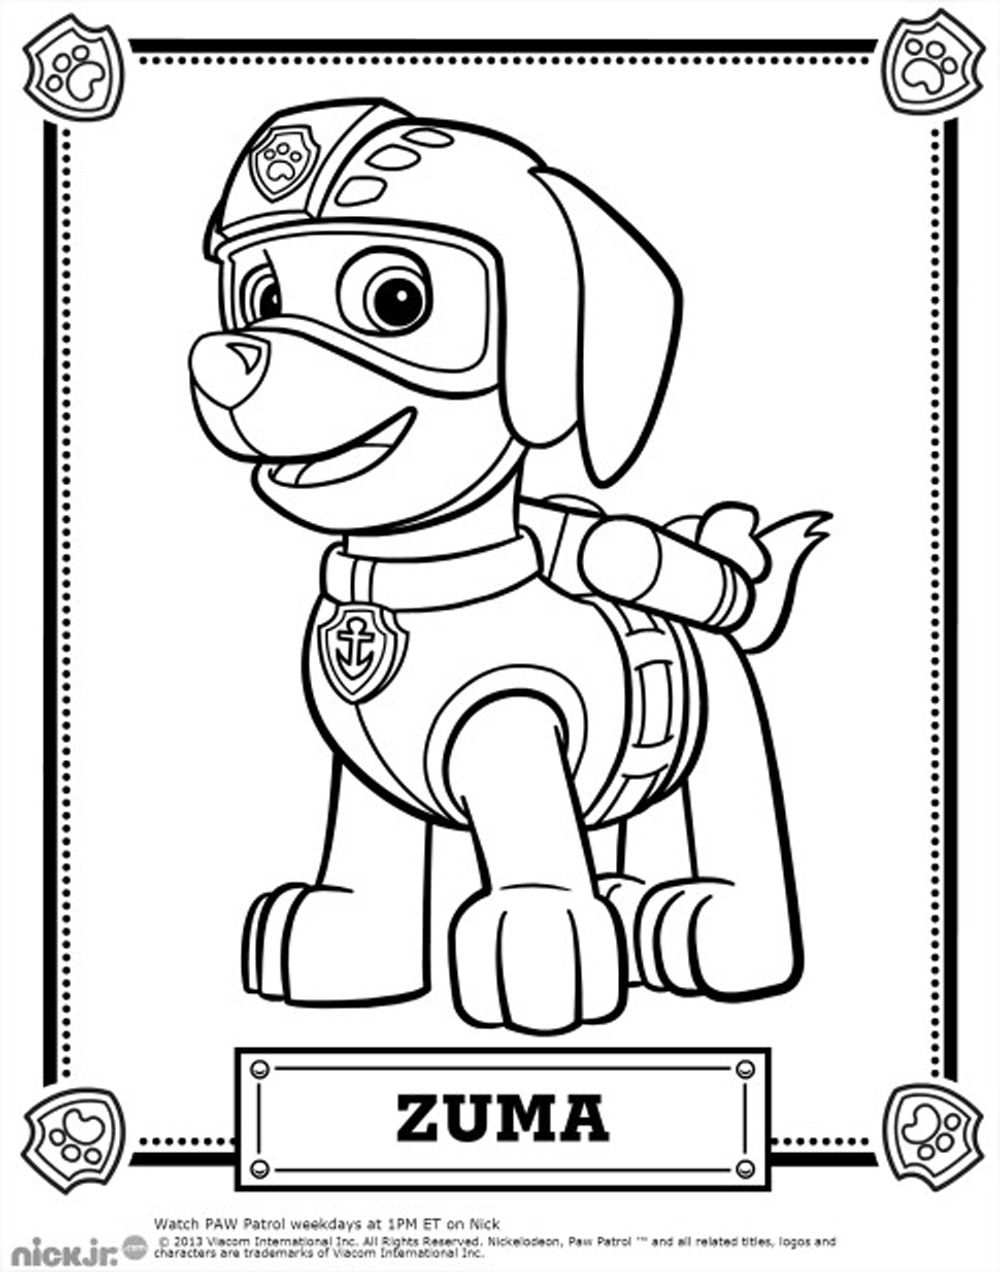 coloriage-pat-patrouille-zuma.jpg (1000×1272) | Coloring Pages ...